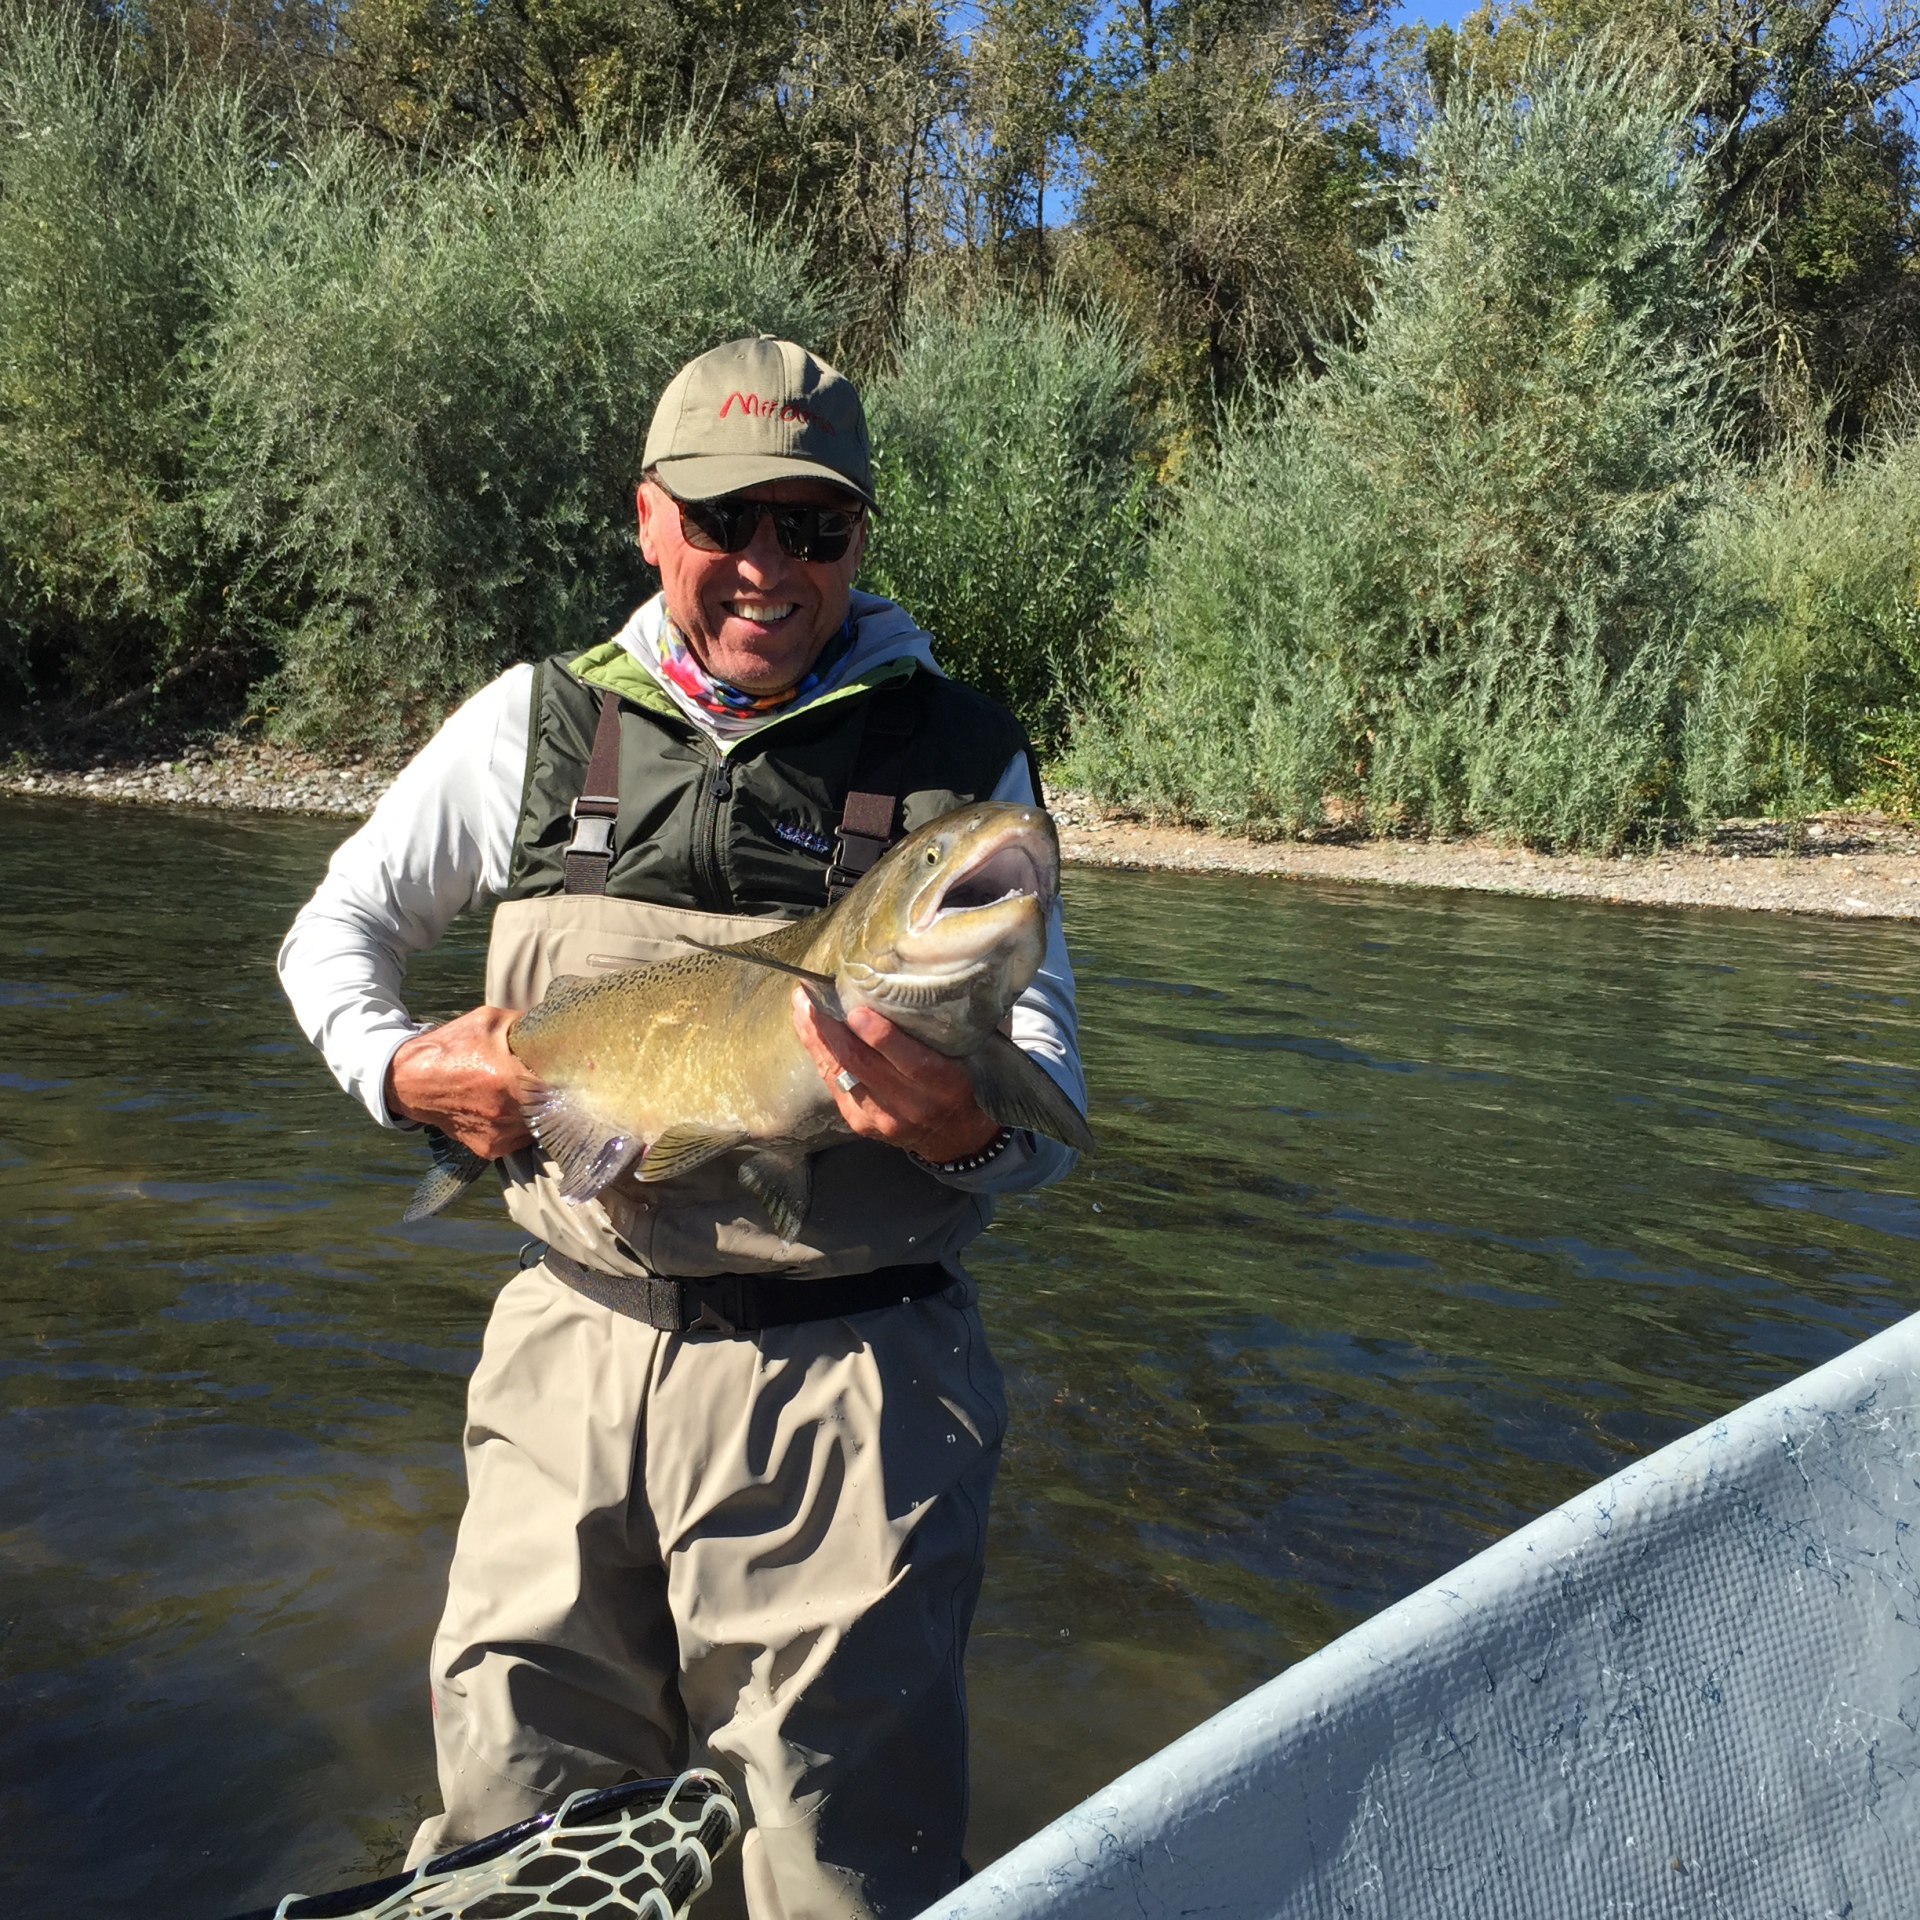 Rogue River Fly Fishing, Medford Fly Shop, Medford Fly Fishing Shop and Guide Service